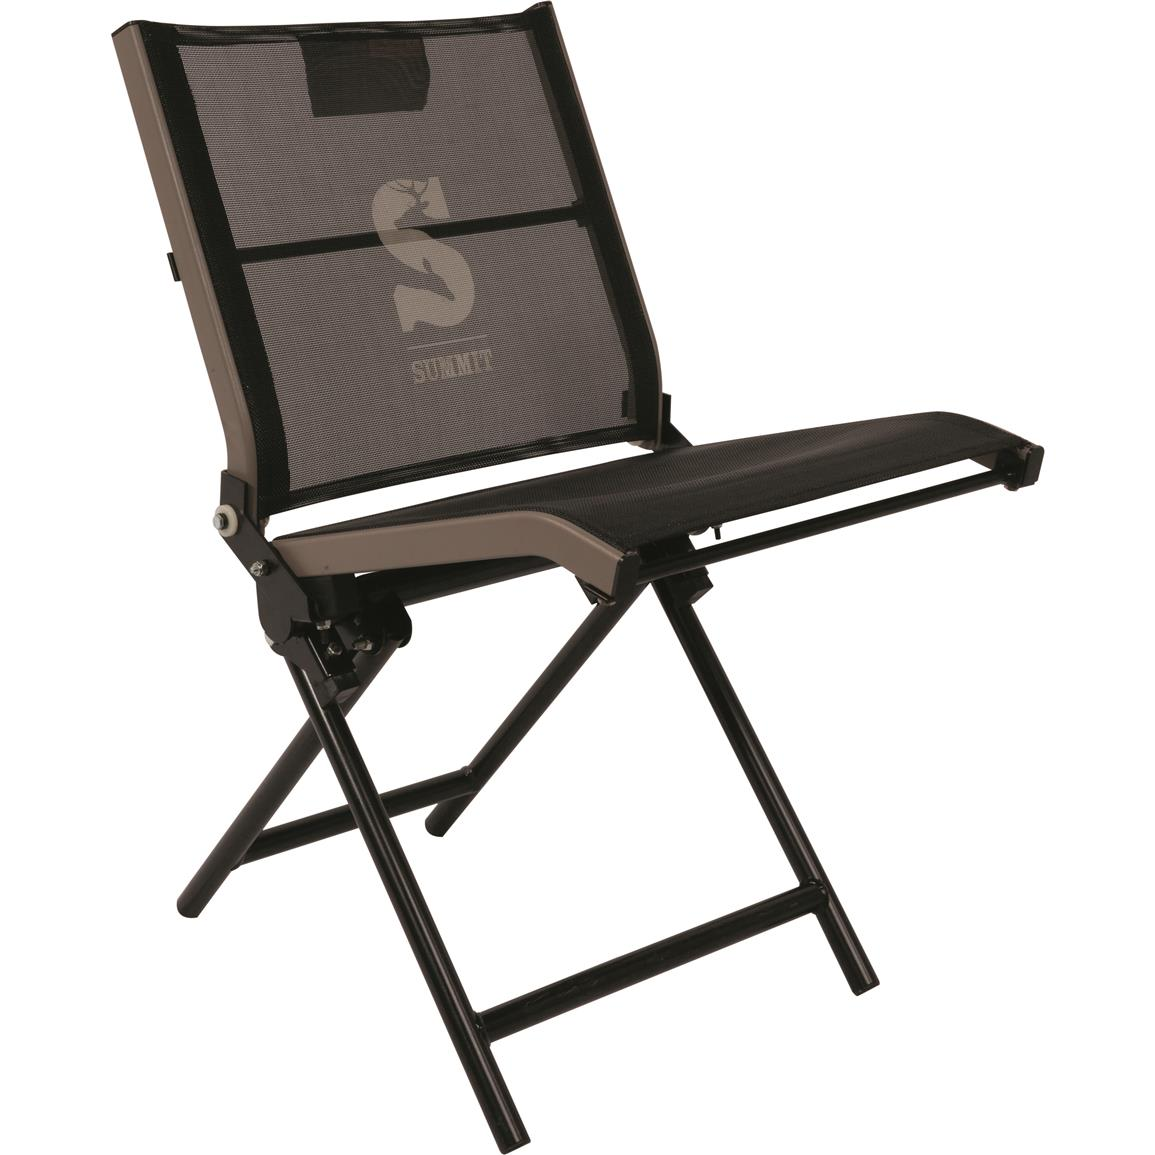 summit trophy chair review replacing wicker back chairs ground hunting seat 698085 stools and